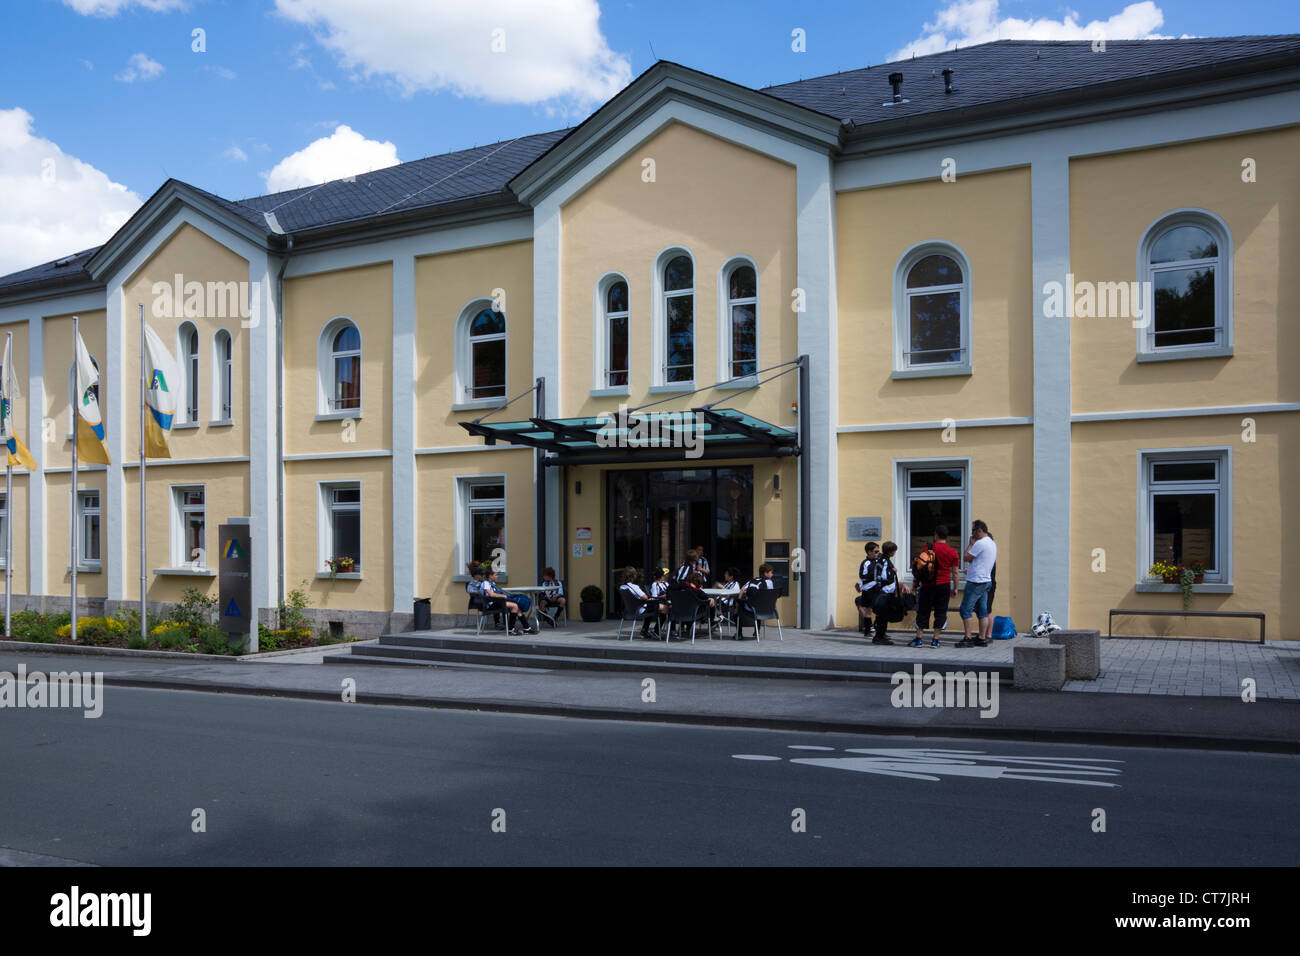 Youth hostel, Korbach, district  Waldeck-Frankenberg, Hesse, Germany, Europe - Stock Image